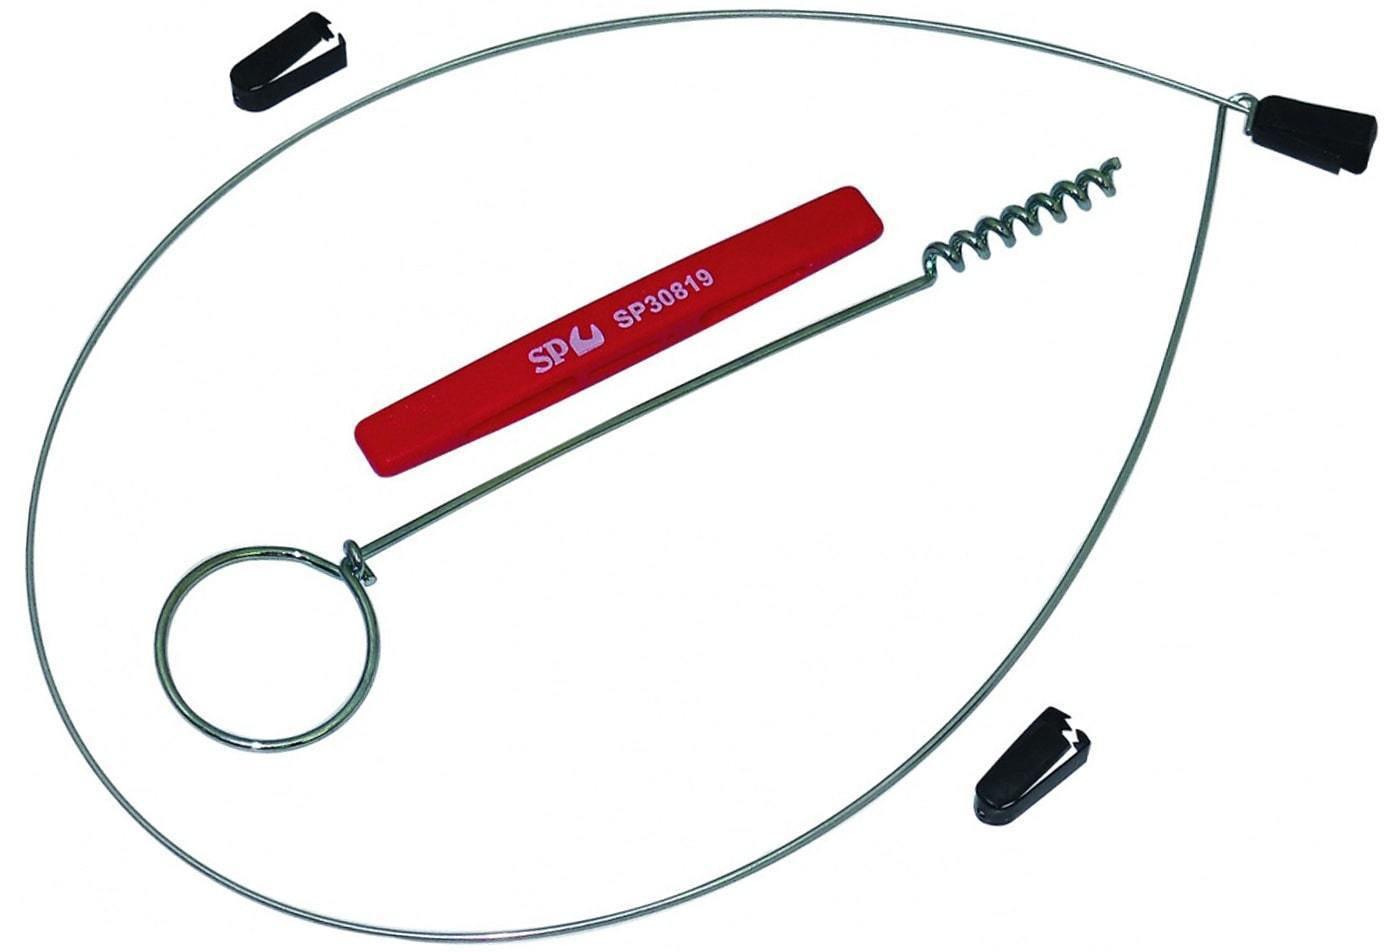 seal-removal-installation-kit-for-wick-seals